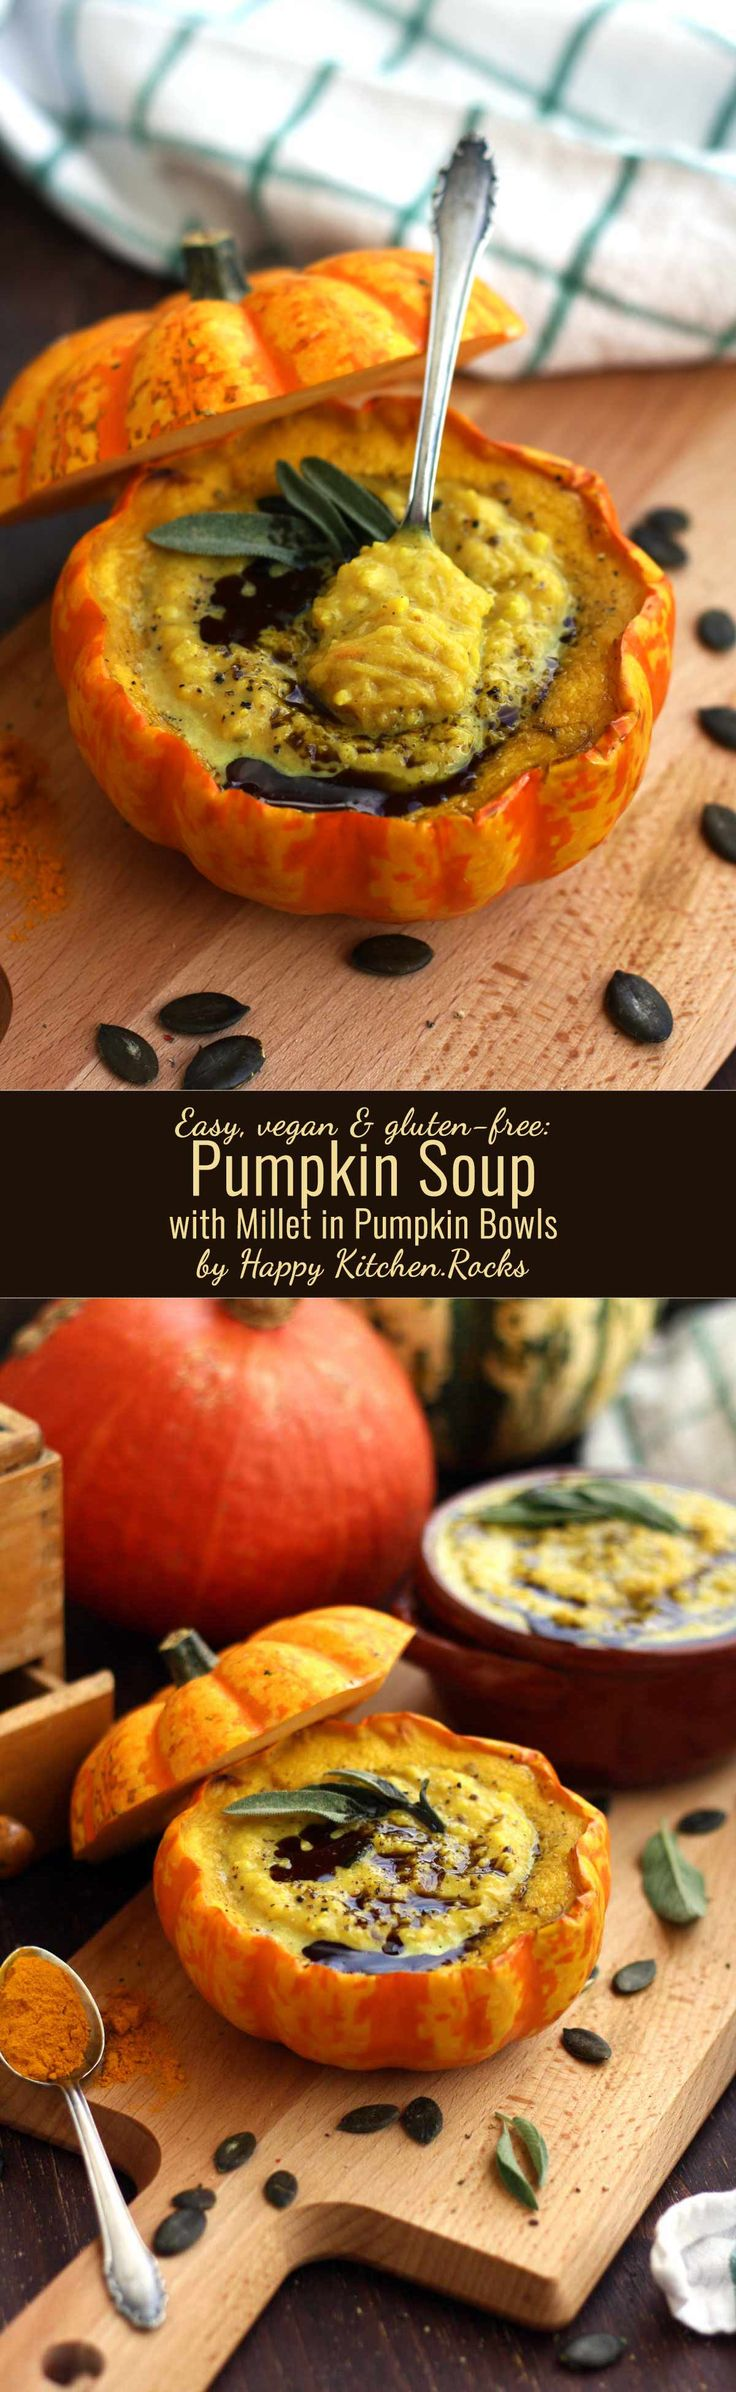 Easy pumpkin soup with millet served in pumpkin bowls is nourishing and comforting while being gluten-free and vegan! This recipe doesn't require a blender!